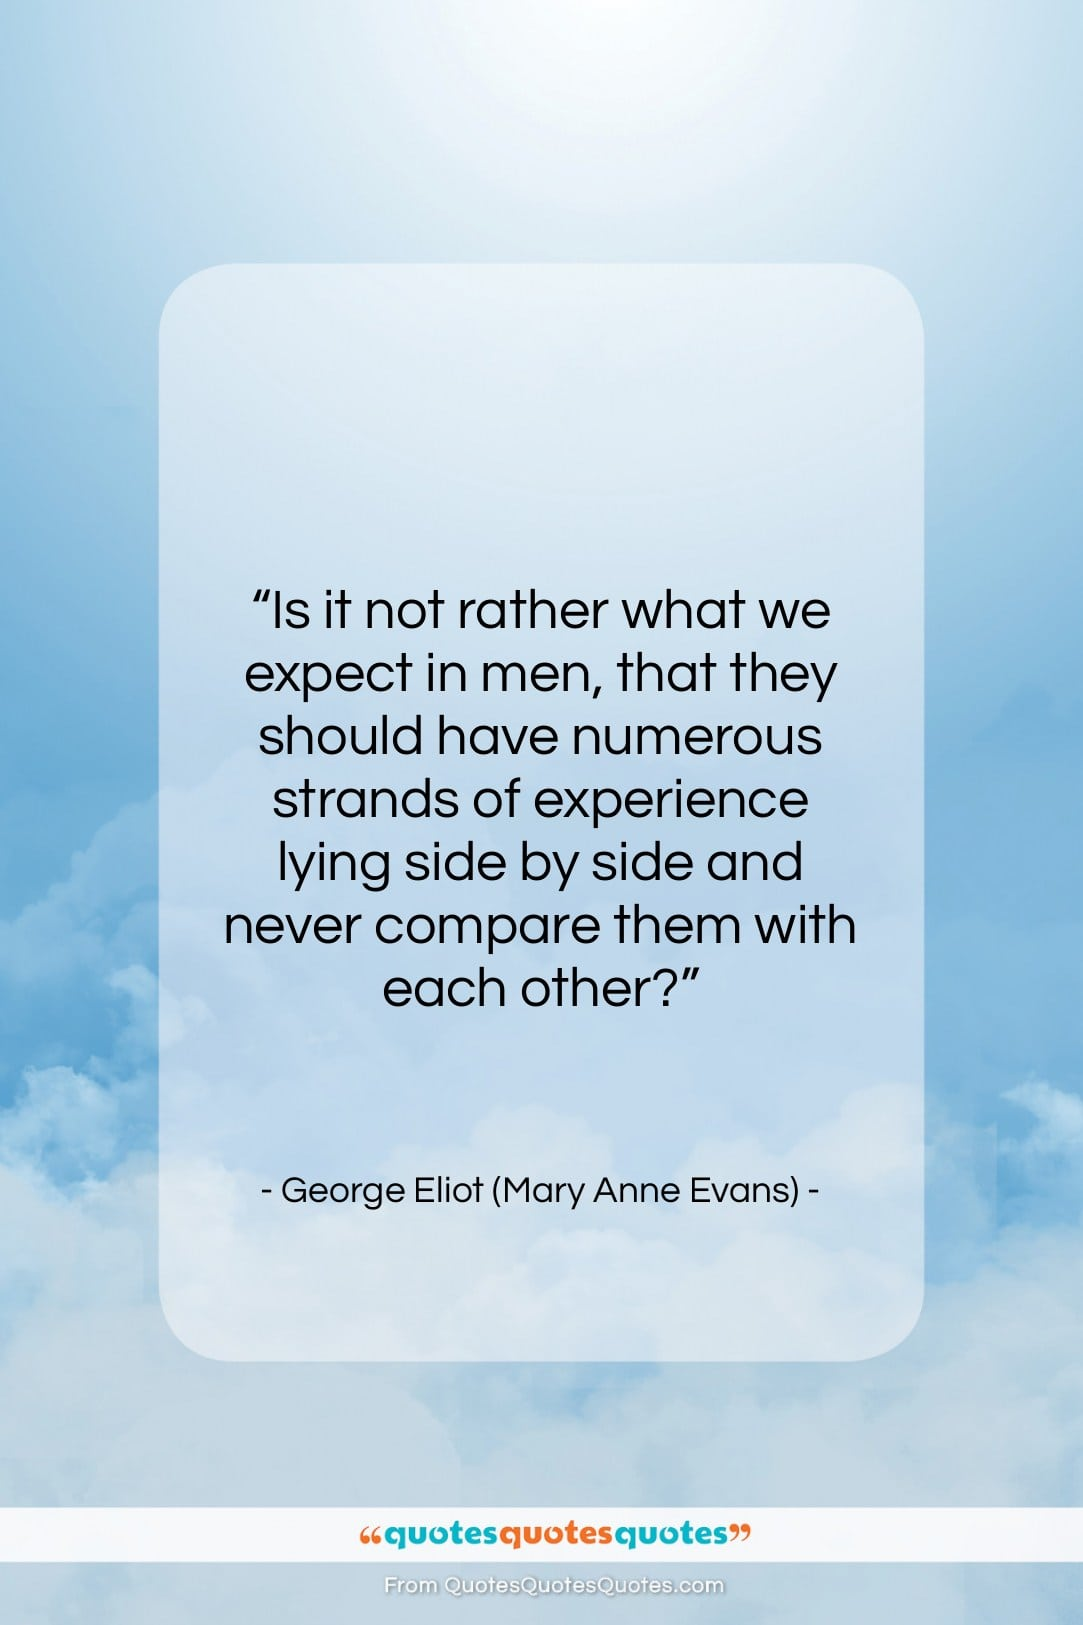 """George Eliot (Mary Anne Evans) quote: """"Is it not rather what we expect…""""- at QuotesQuotesQuotes.com"""